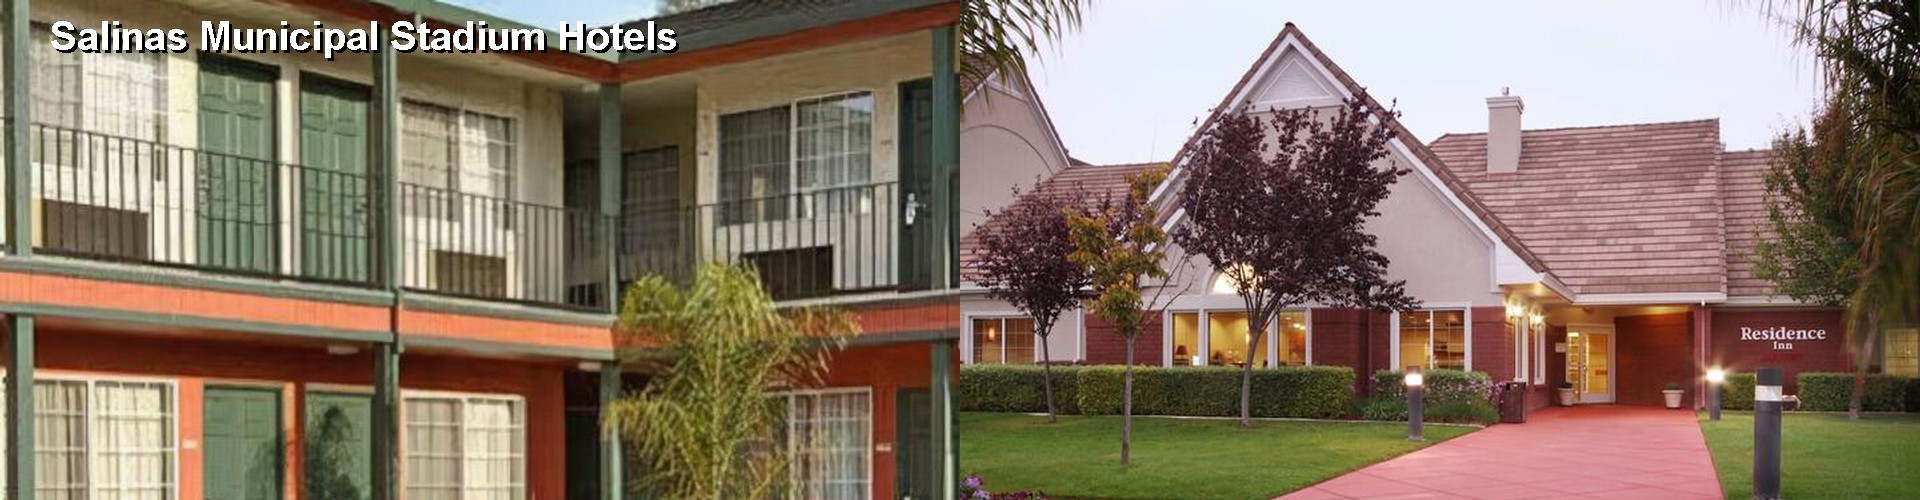 5 Best Hotels near Salinas Municipal Stadium